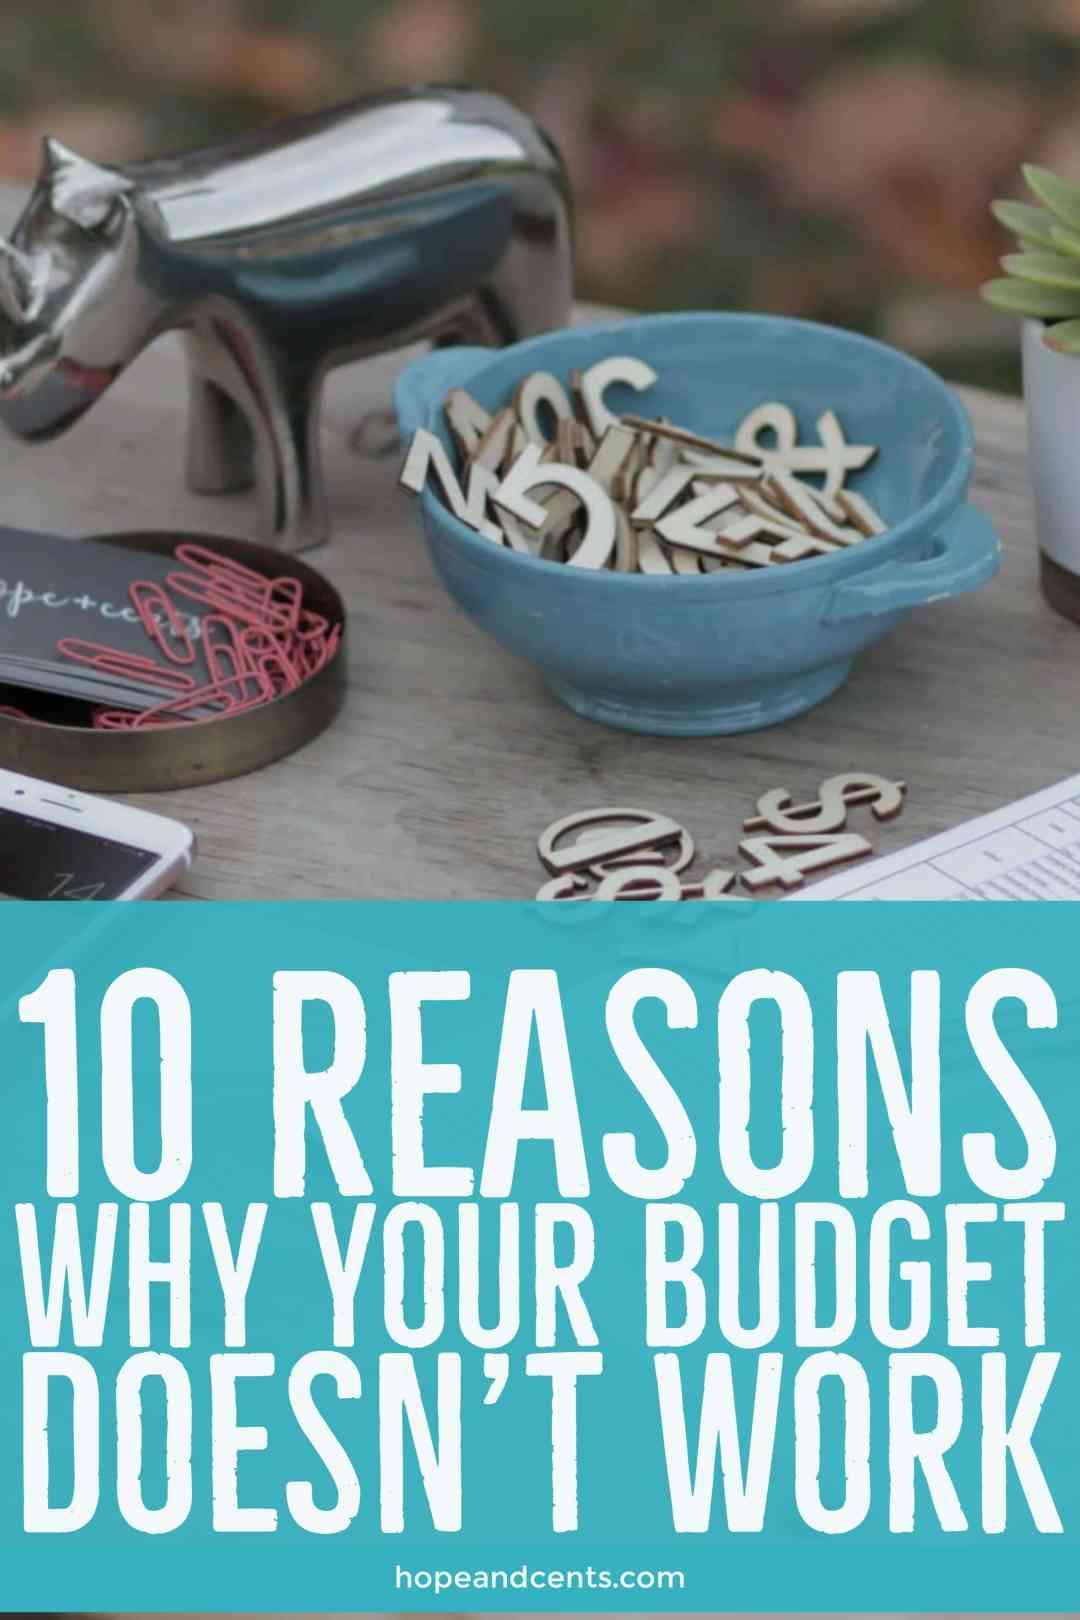 Have you tried to budget only to give up? There is a reason your budget doesn't work. In fact, there are several. Learn some changes you can make right away to create a working and lasting budget. #moneytips #budget  #personalfinance #frugal